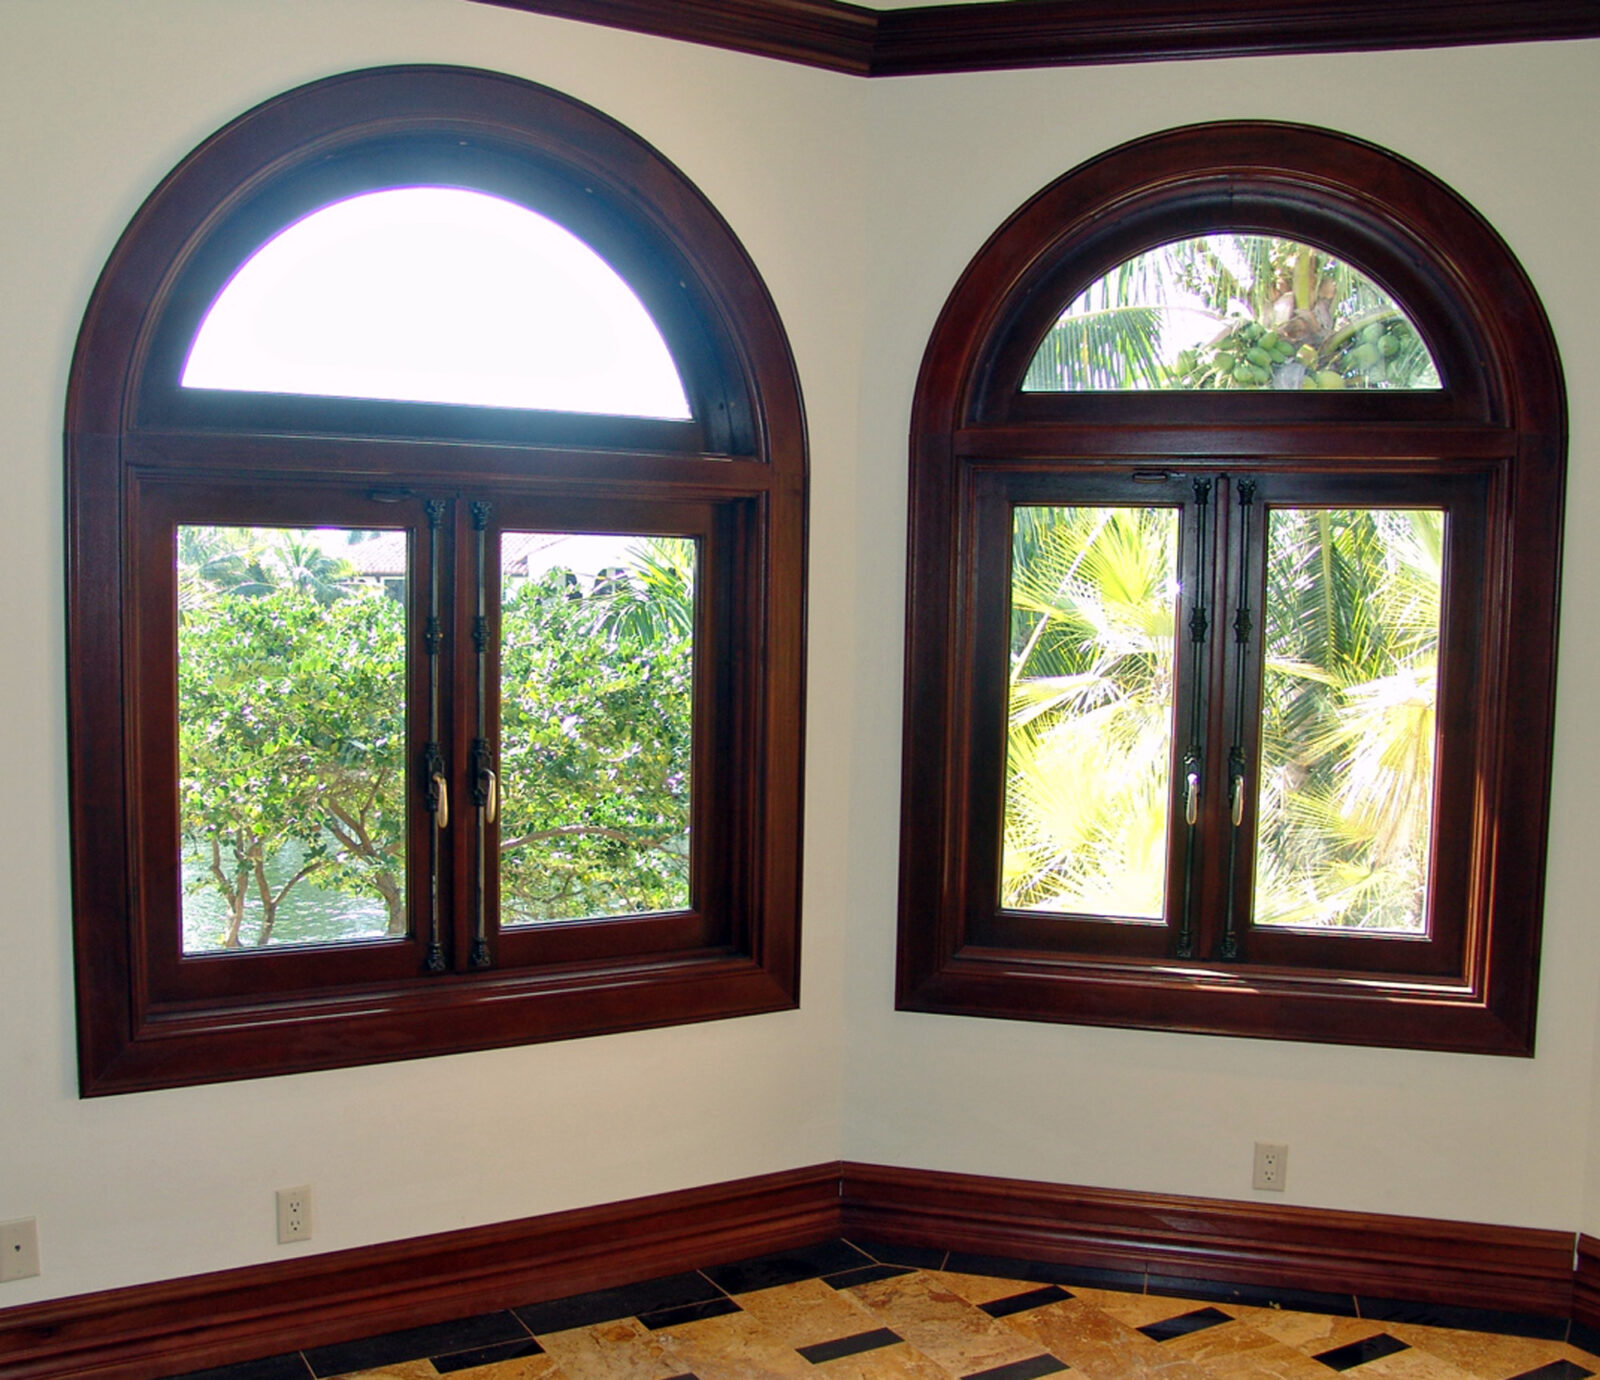 NURMI ISLAND MAHOGANY ARCHED WINDOWS